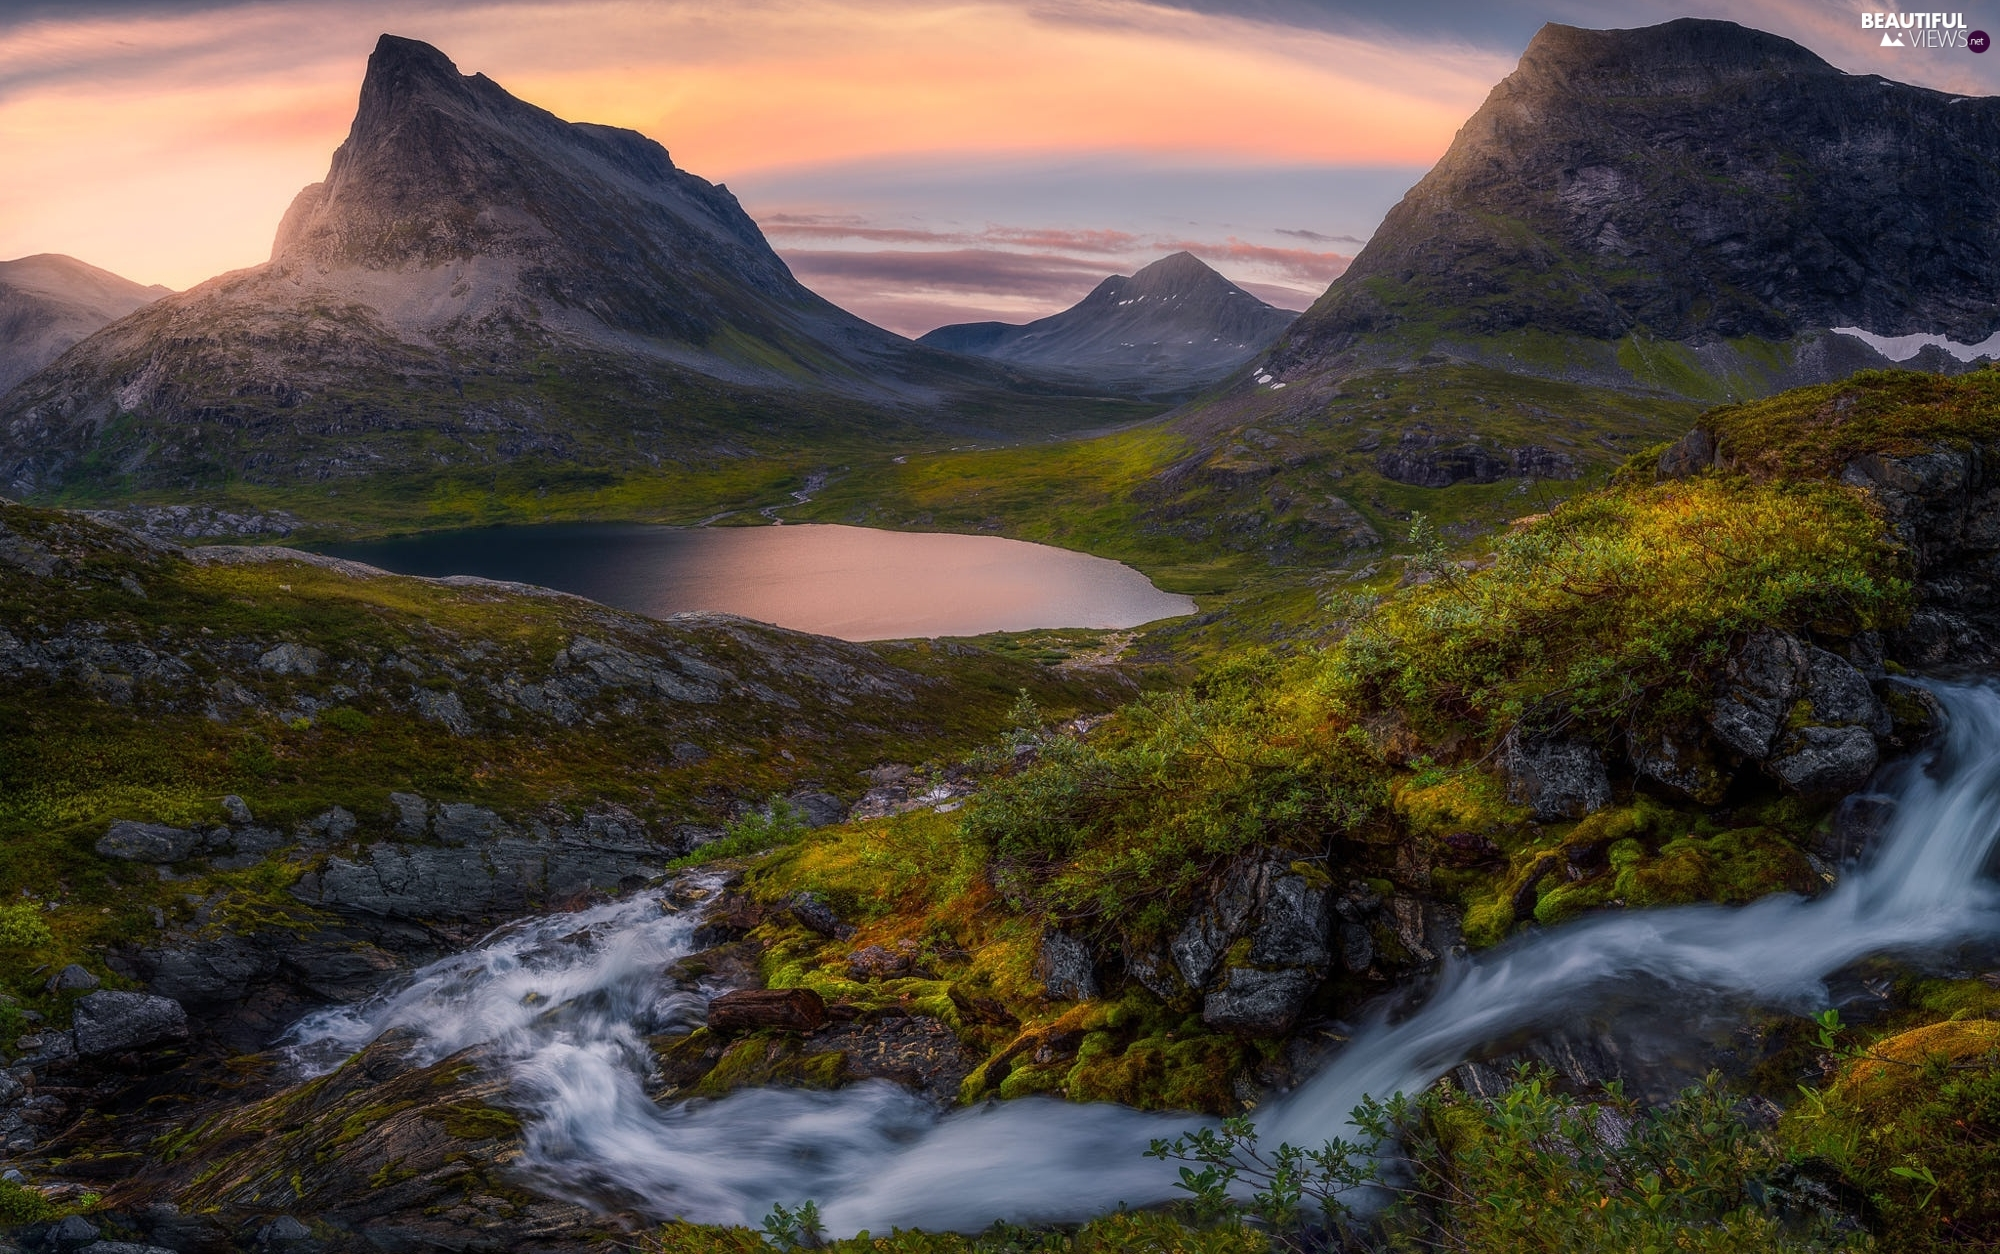 Mountains, Romsdalen Valley, waterfall, VEGETATION, lake, Norway